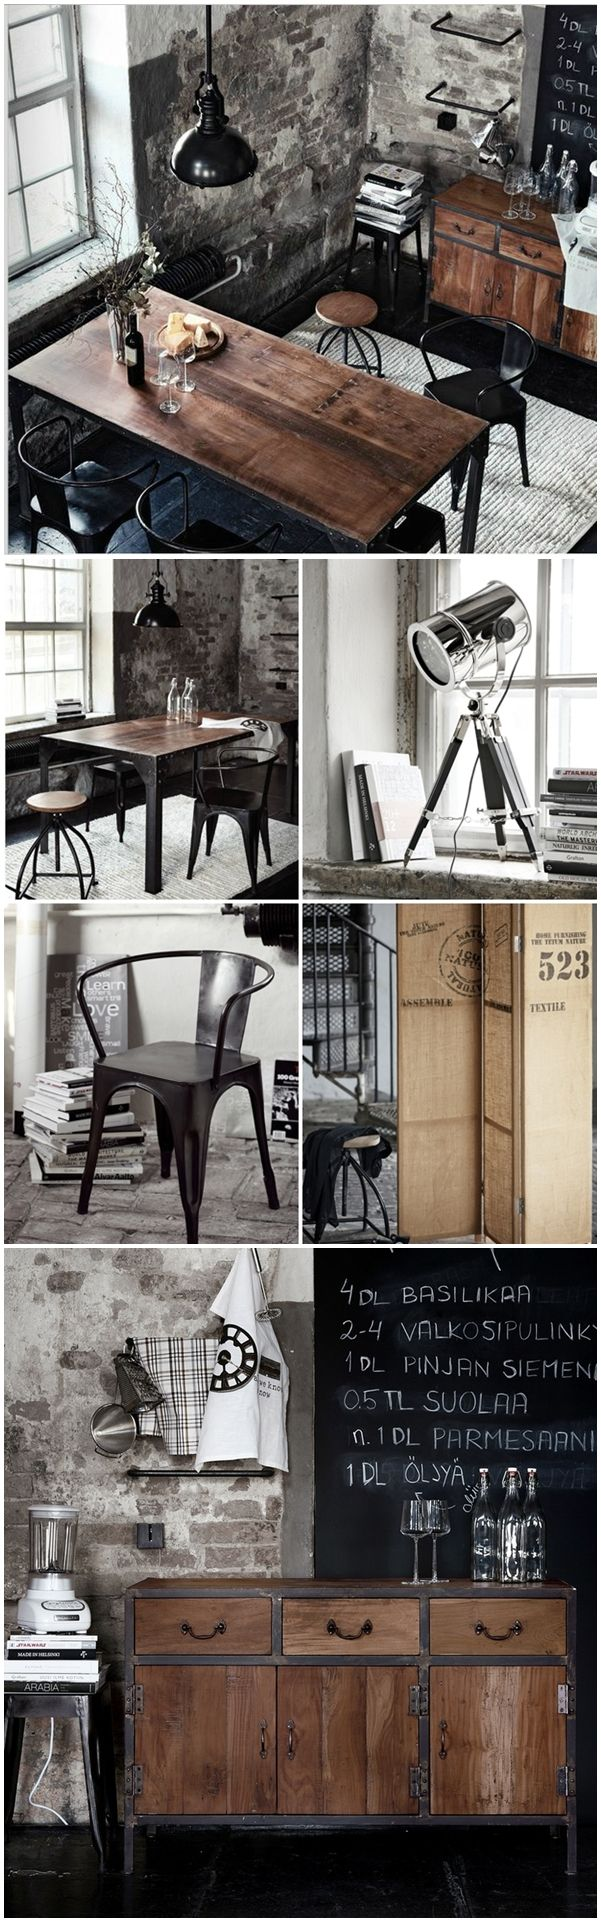 Discover This Startling Cinematic Cocktail Bar In West Hollywood!  | http://vintageindustrialstyle.com/ | vintage industrial style vintage home decor industrial home decor